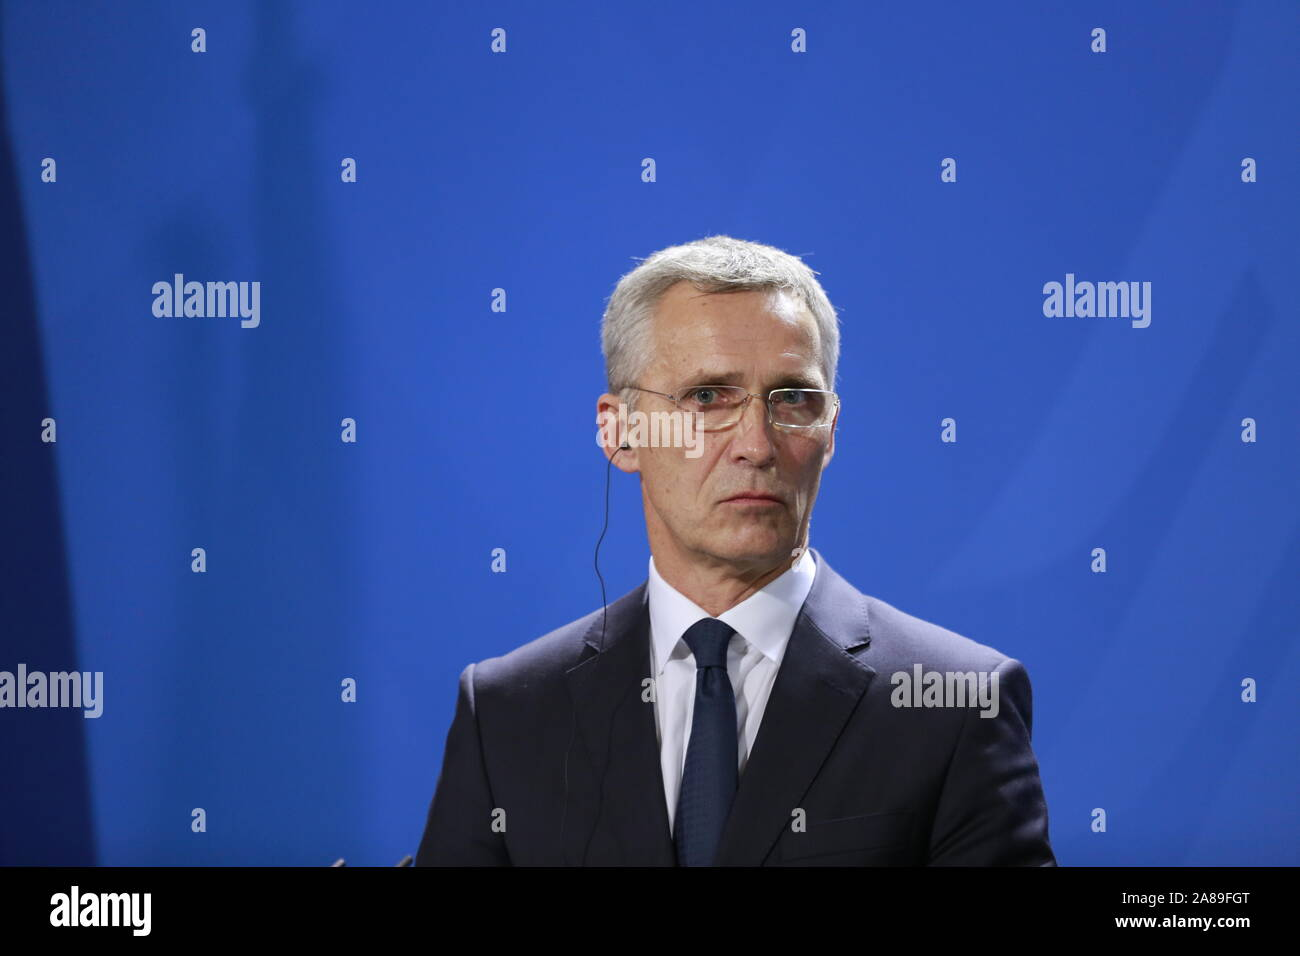 11/07/2019, Berlin, Germany, Jens Stoltenberg in the Chancellery. German Chancellor Angela Merkel receives NATO Secretary General Jens Stoltenberg on 7 November for a working visit to the Federal Chancellery. In addition to exchanging views on current issues, the exchange of views will include, in particular, the forthcoming NATO Heads of Government meeting in London on 3 and 4 December 2019, which celebrates the 70th anniversary of the Alliance. Stock Photo